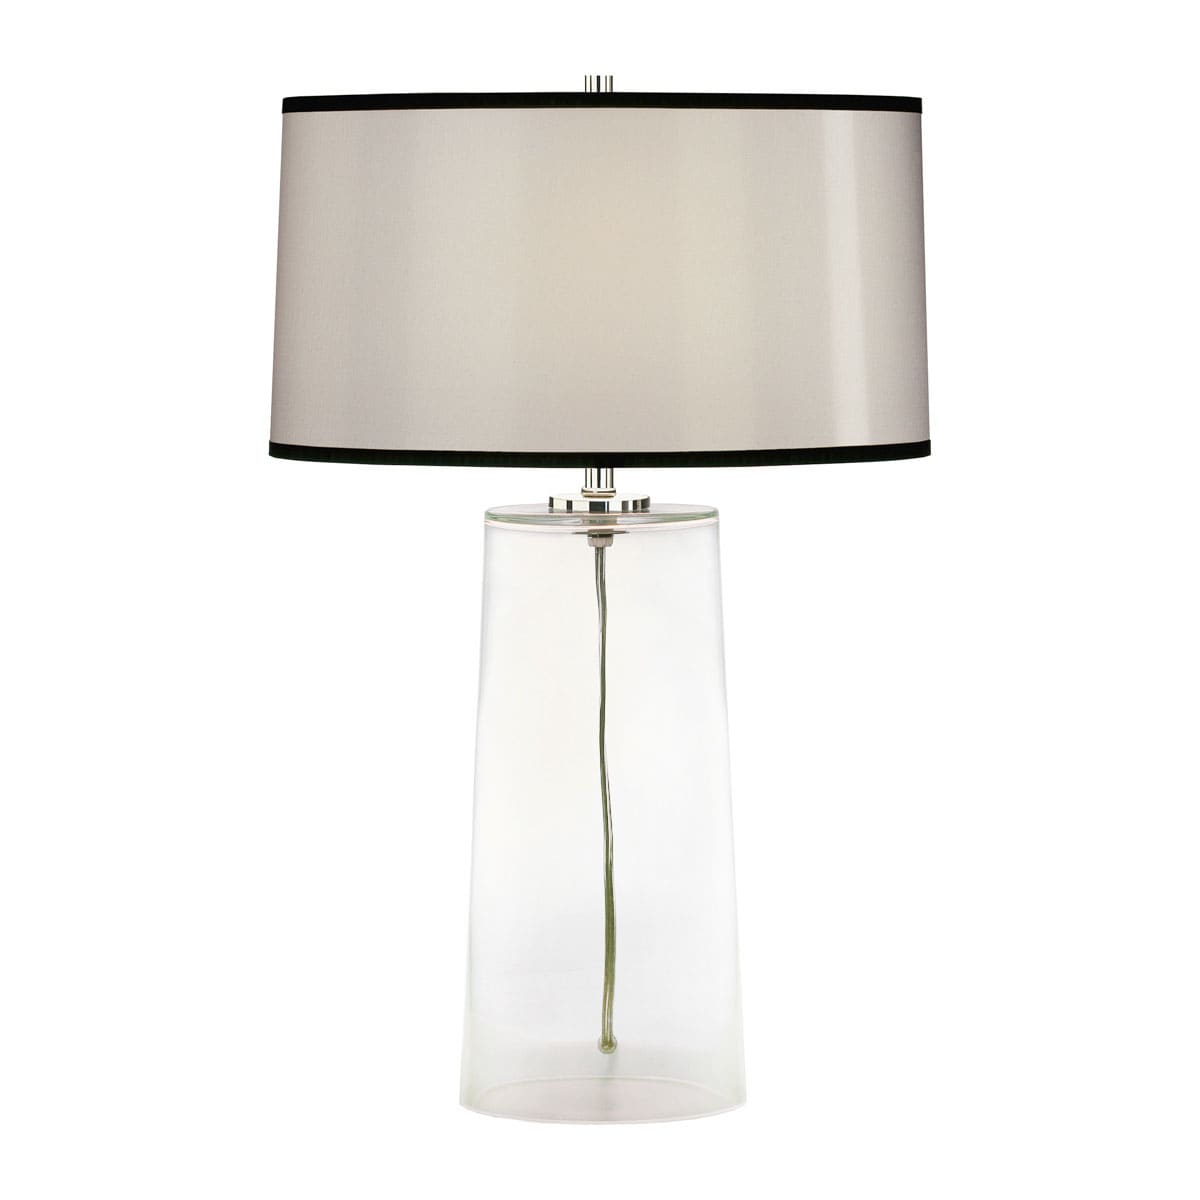 Robert Abbey 1580b Frosted Glass Olinda 23 Column Table Lamp With A Black Organza Shade Lightingshowplace Com